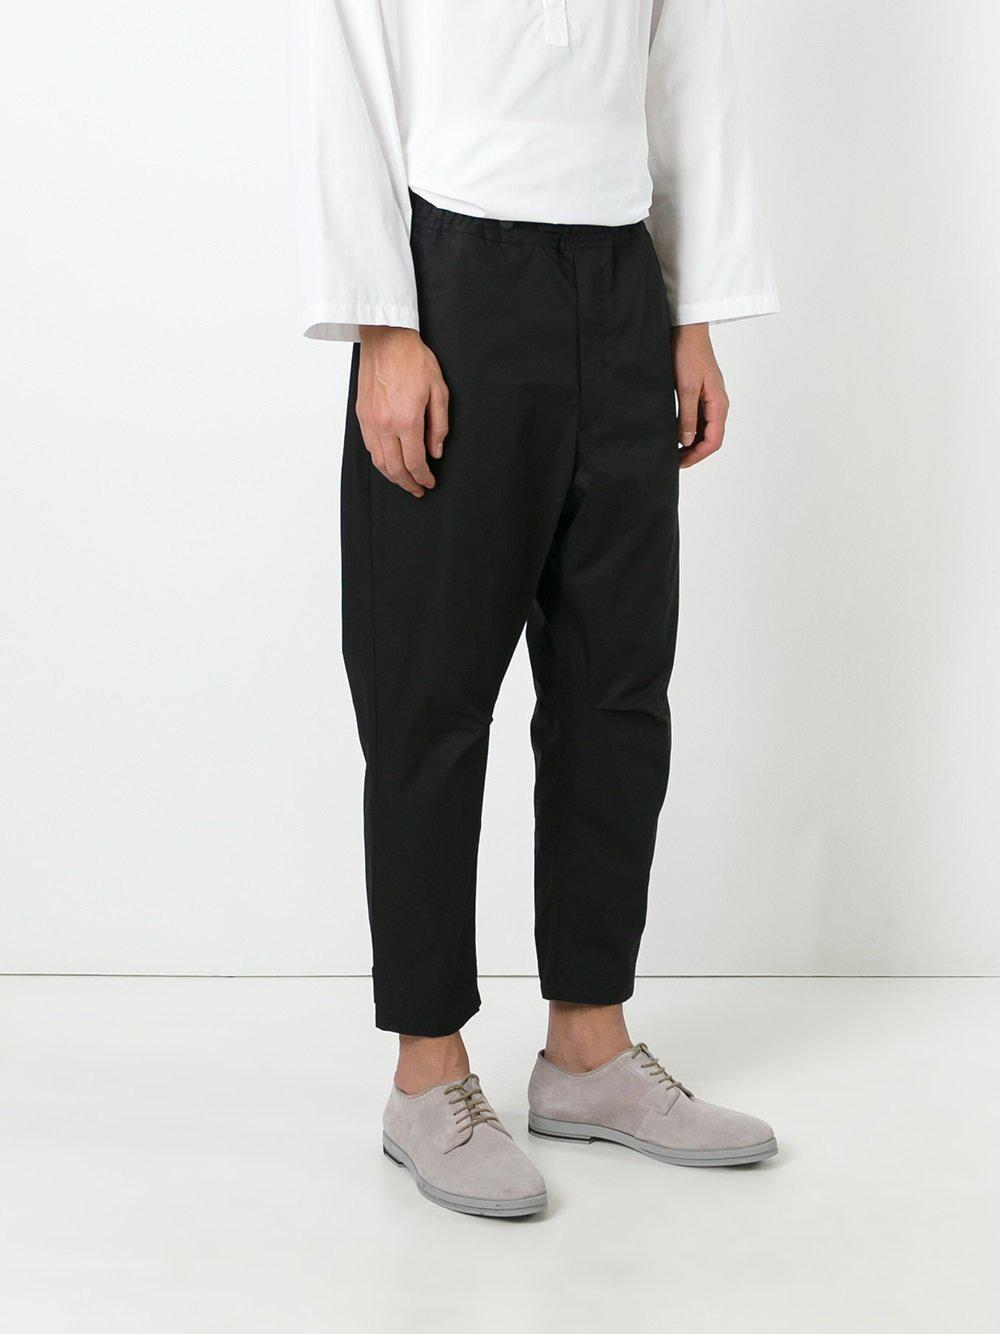 OAMC Cotton Drop-crotch Trousers in Black for Men